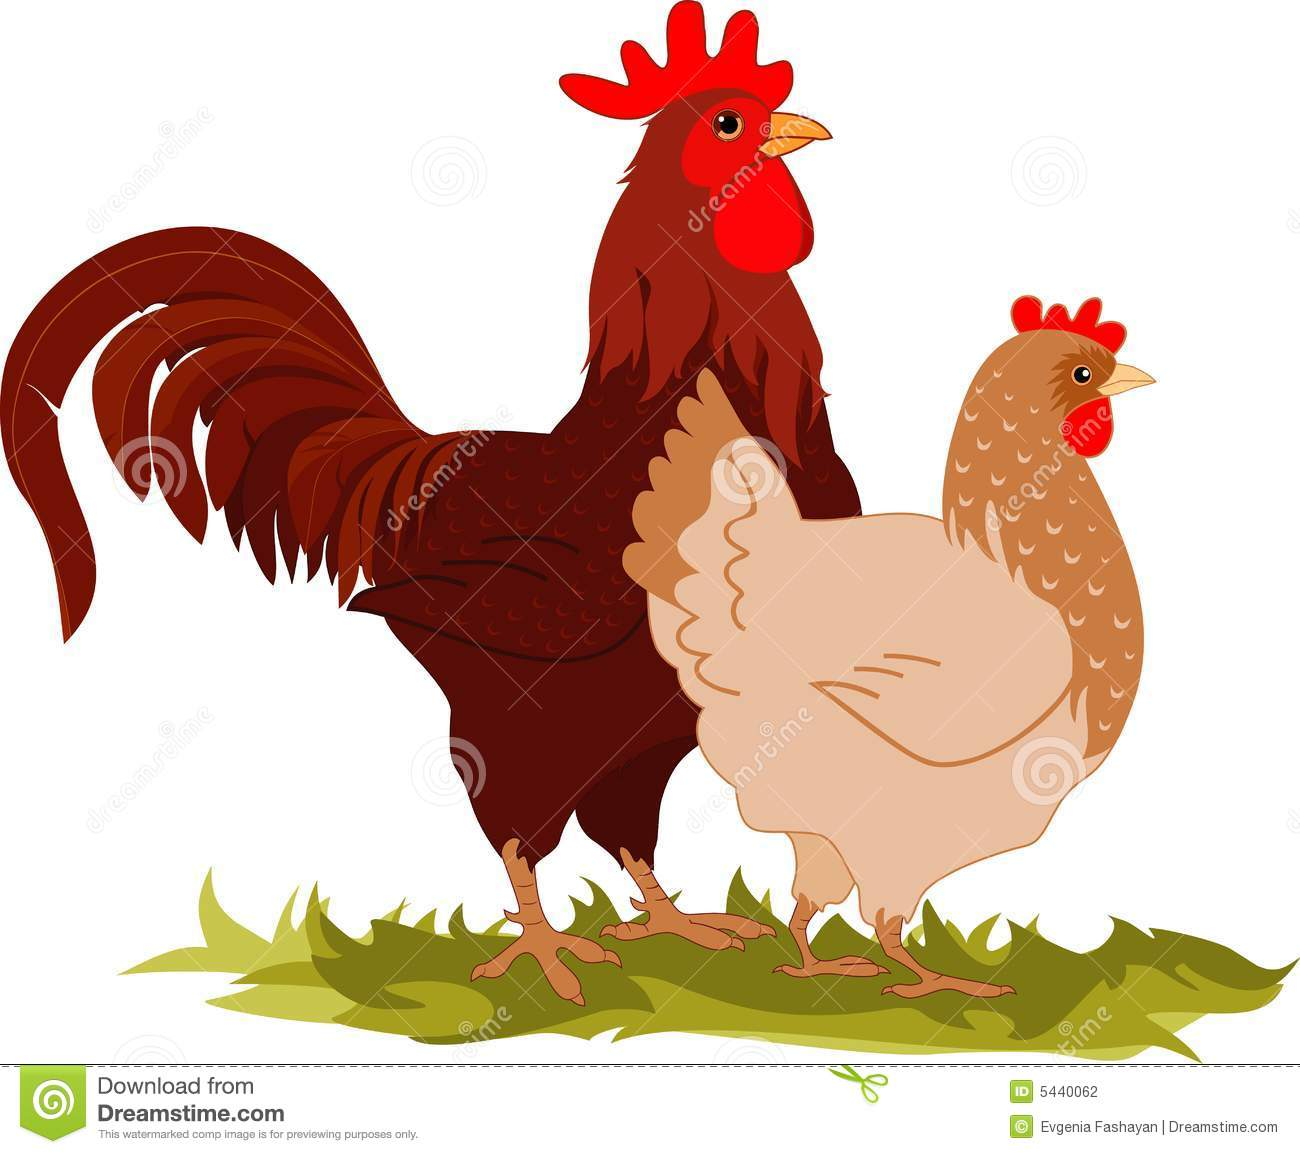 Cartoon vectorial illustration of a hen and a rooster.